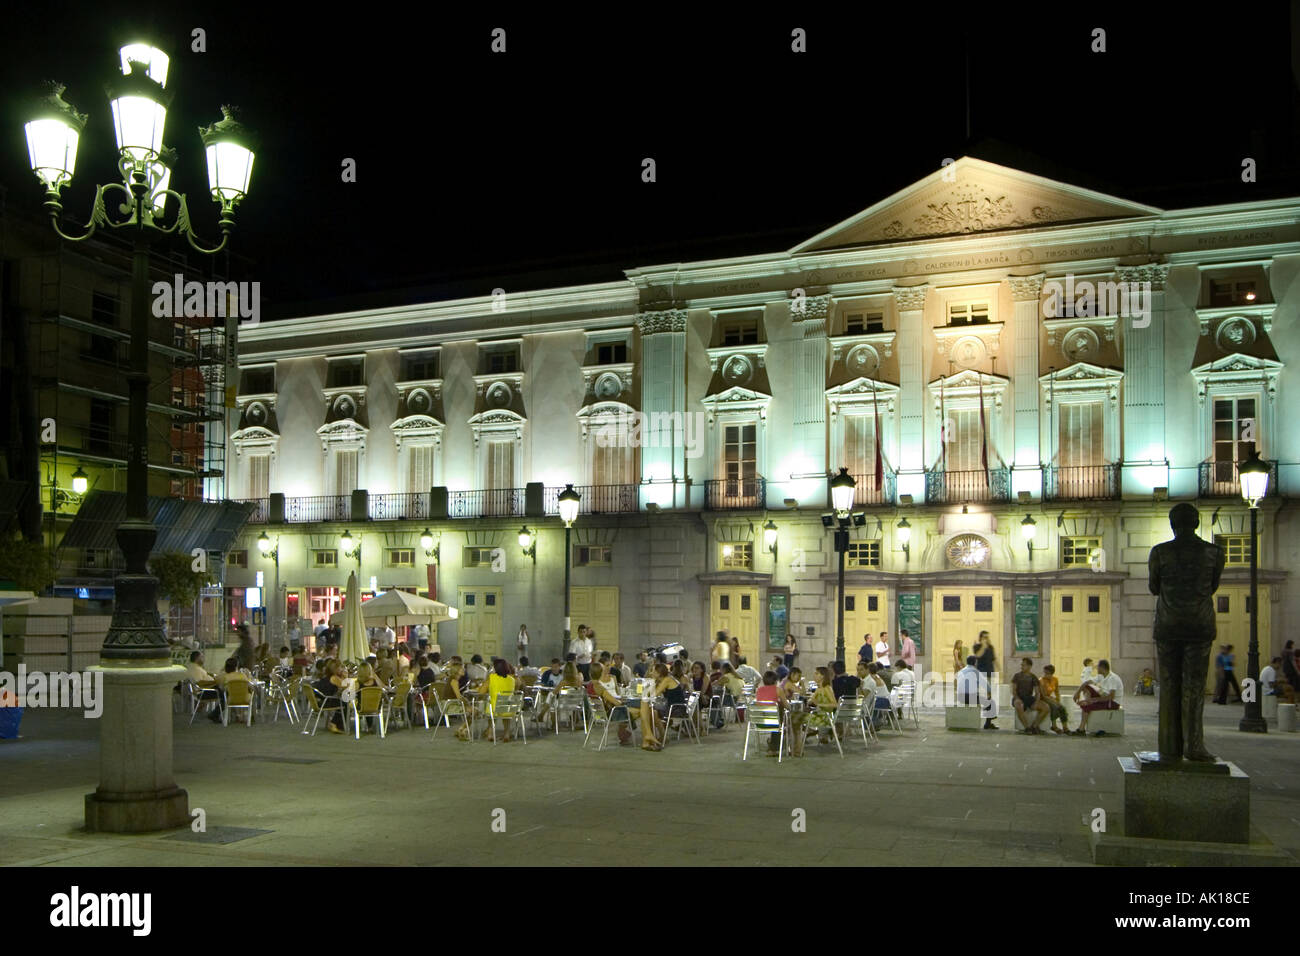 Restaurant in front of the Teatro Espanol near Plaza Santa Ana, Madrid, Spain - Stock Image